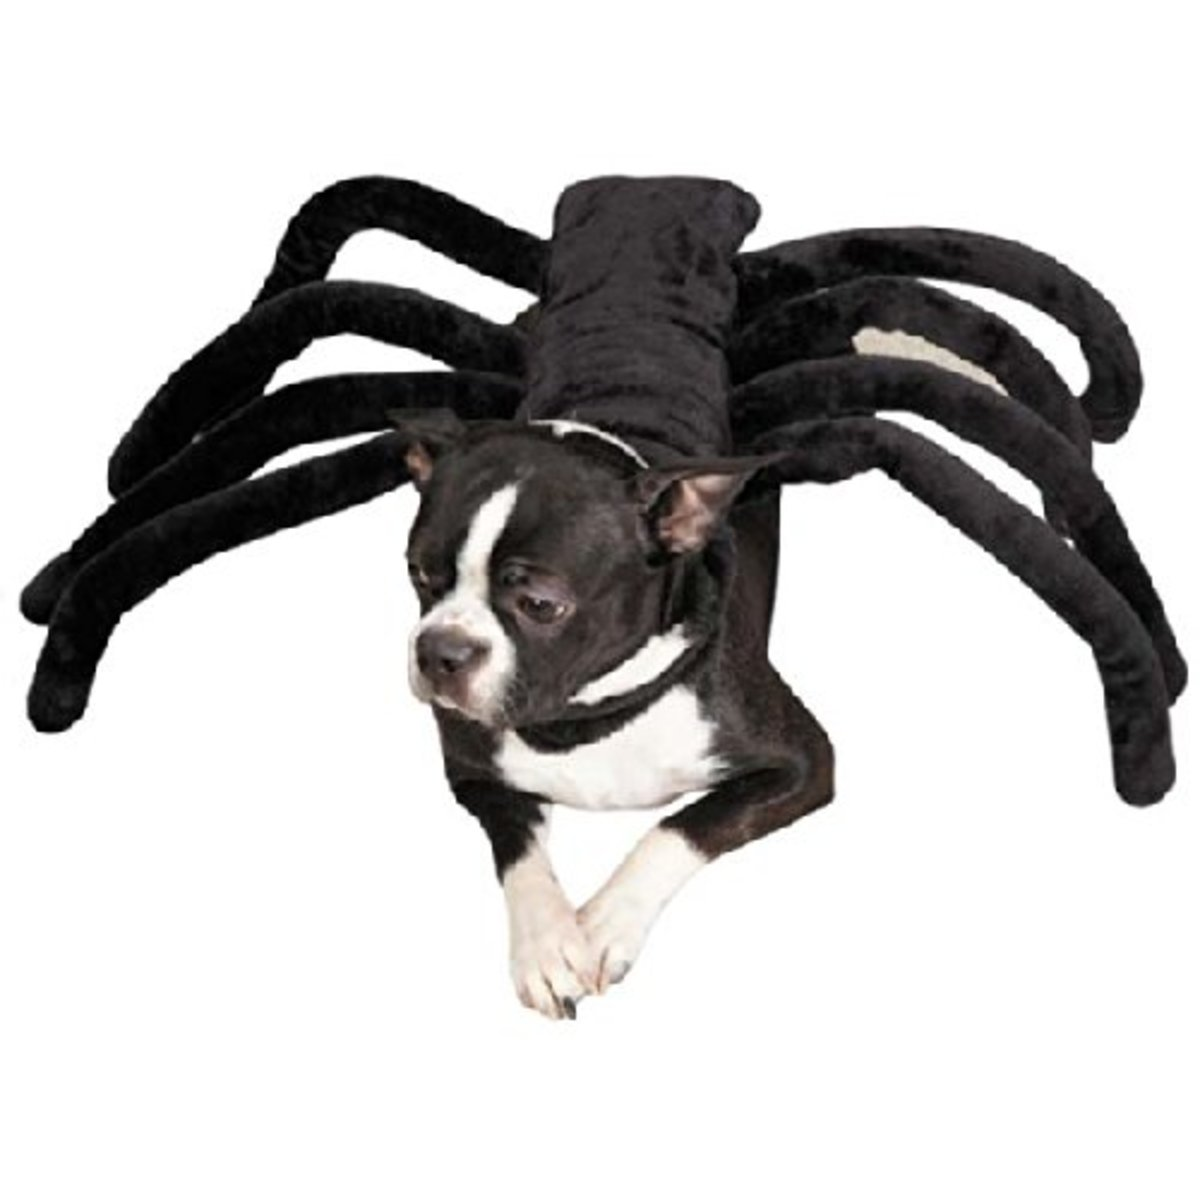 spider-costumes-for-dogs-of-all-sizes